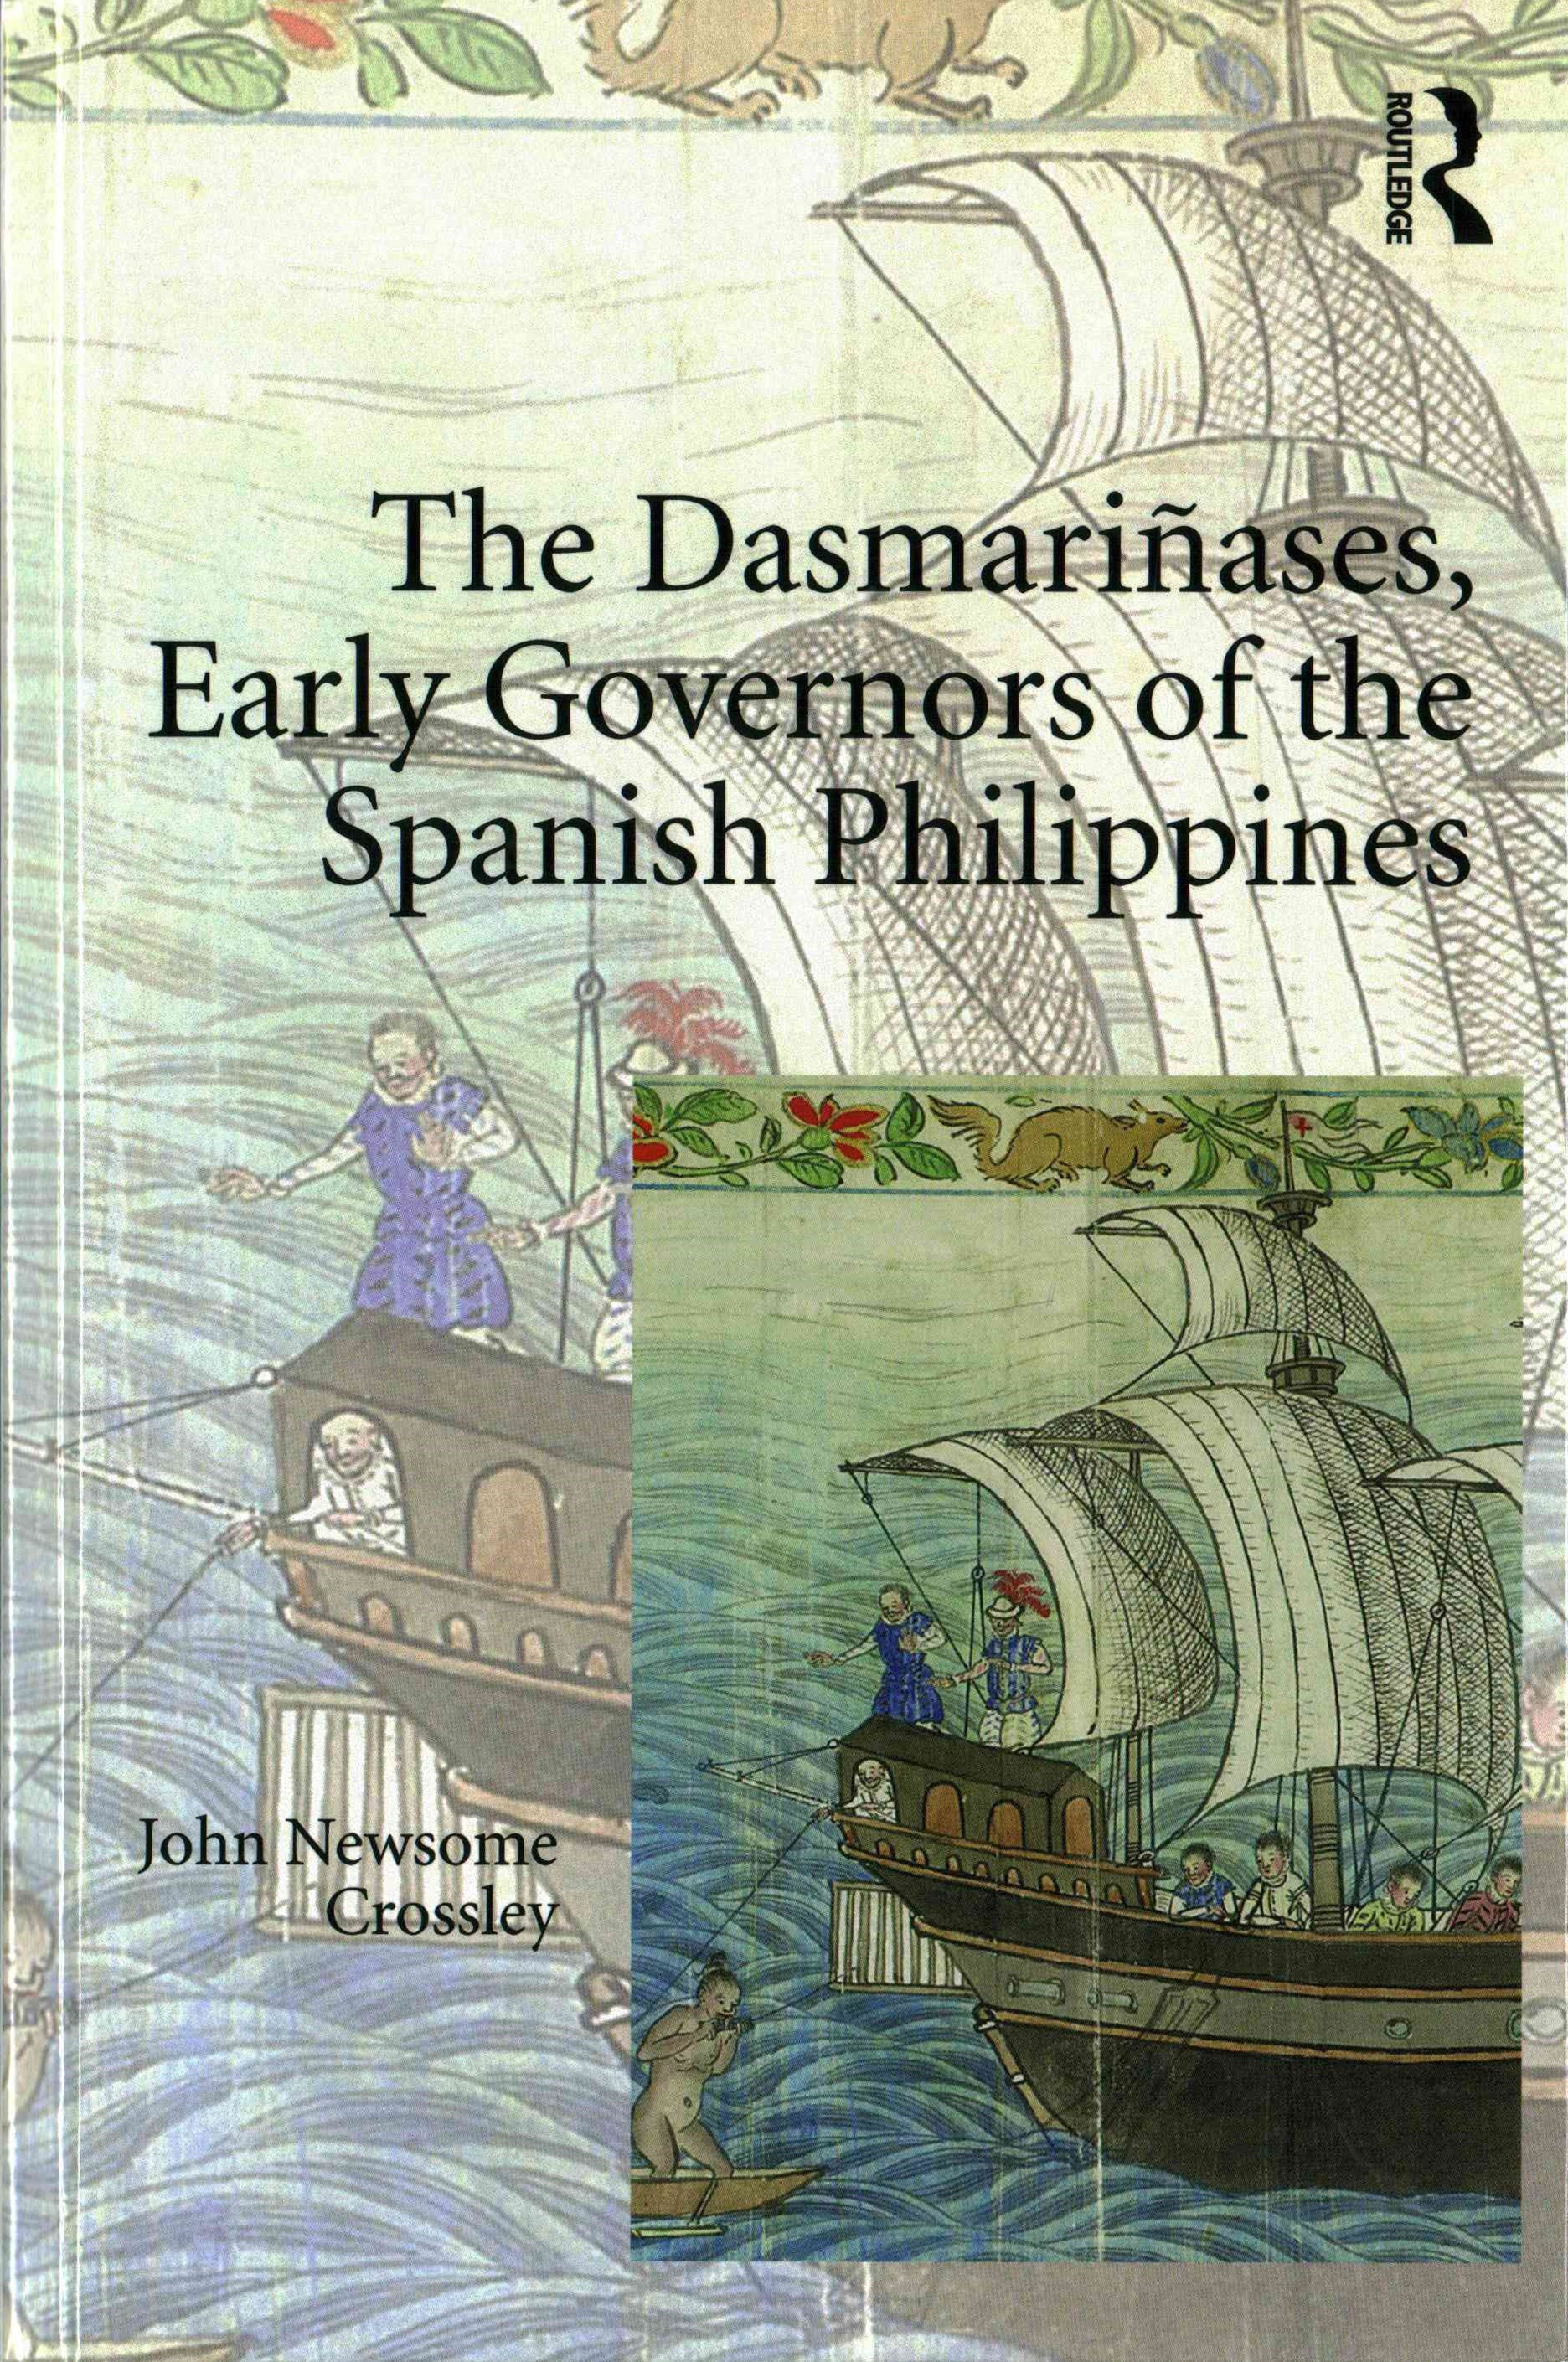 Dasmarinases, Early Governors of the Spanish Philippines